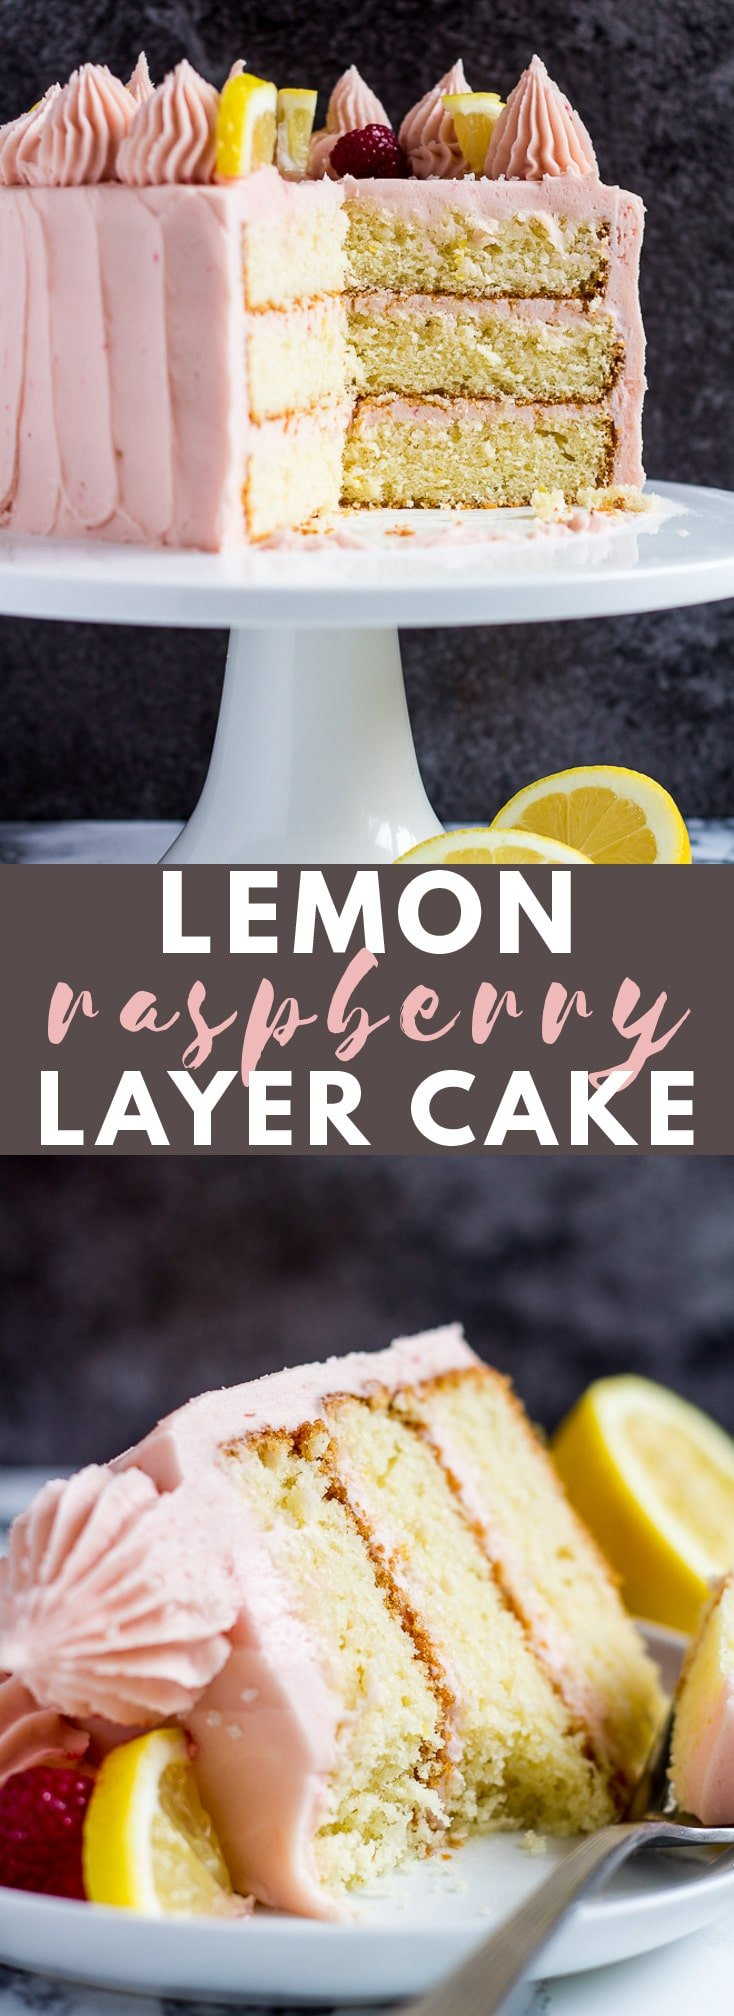 Lemon Raspberry Layer Cake- Deliciously moist and fluffy lemon infused cake frosted with a creamy raspberry buttercream, and topped with fresh raspberries and lemon slices! #lemon #raspberry #cake #cakerecipes